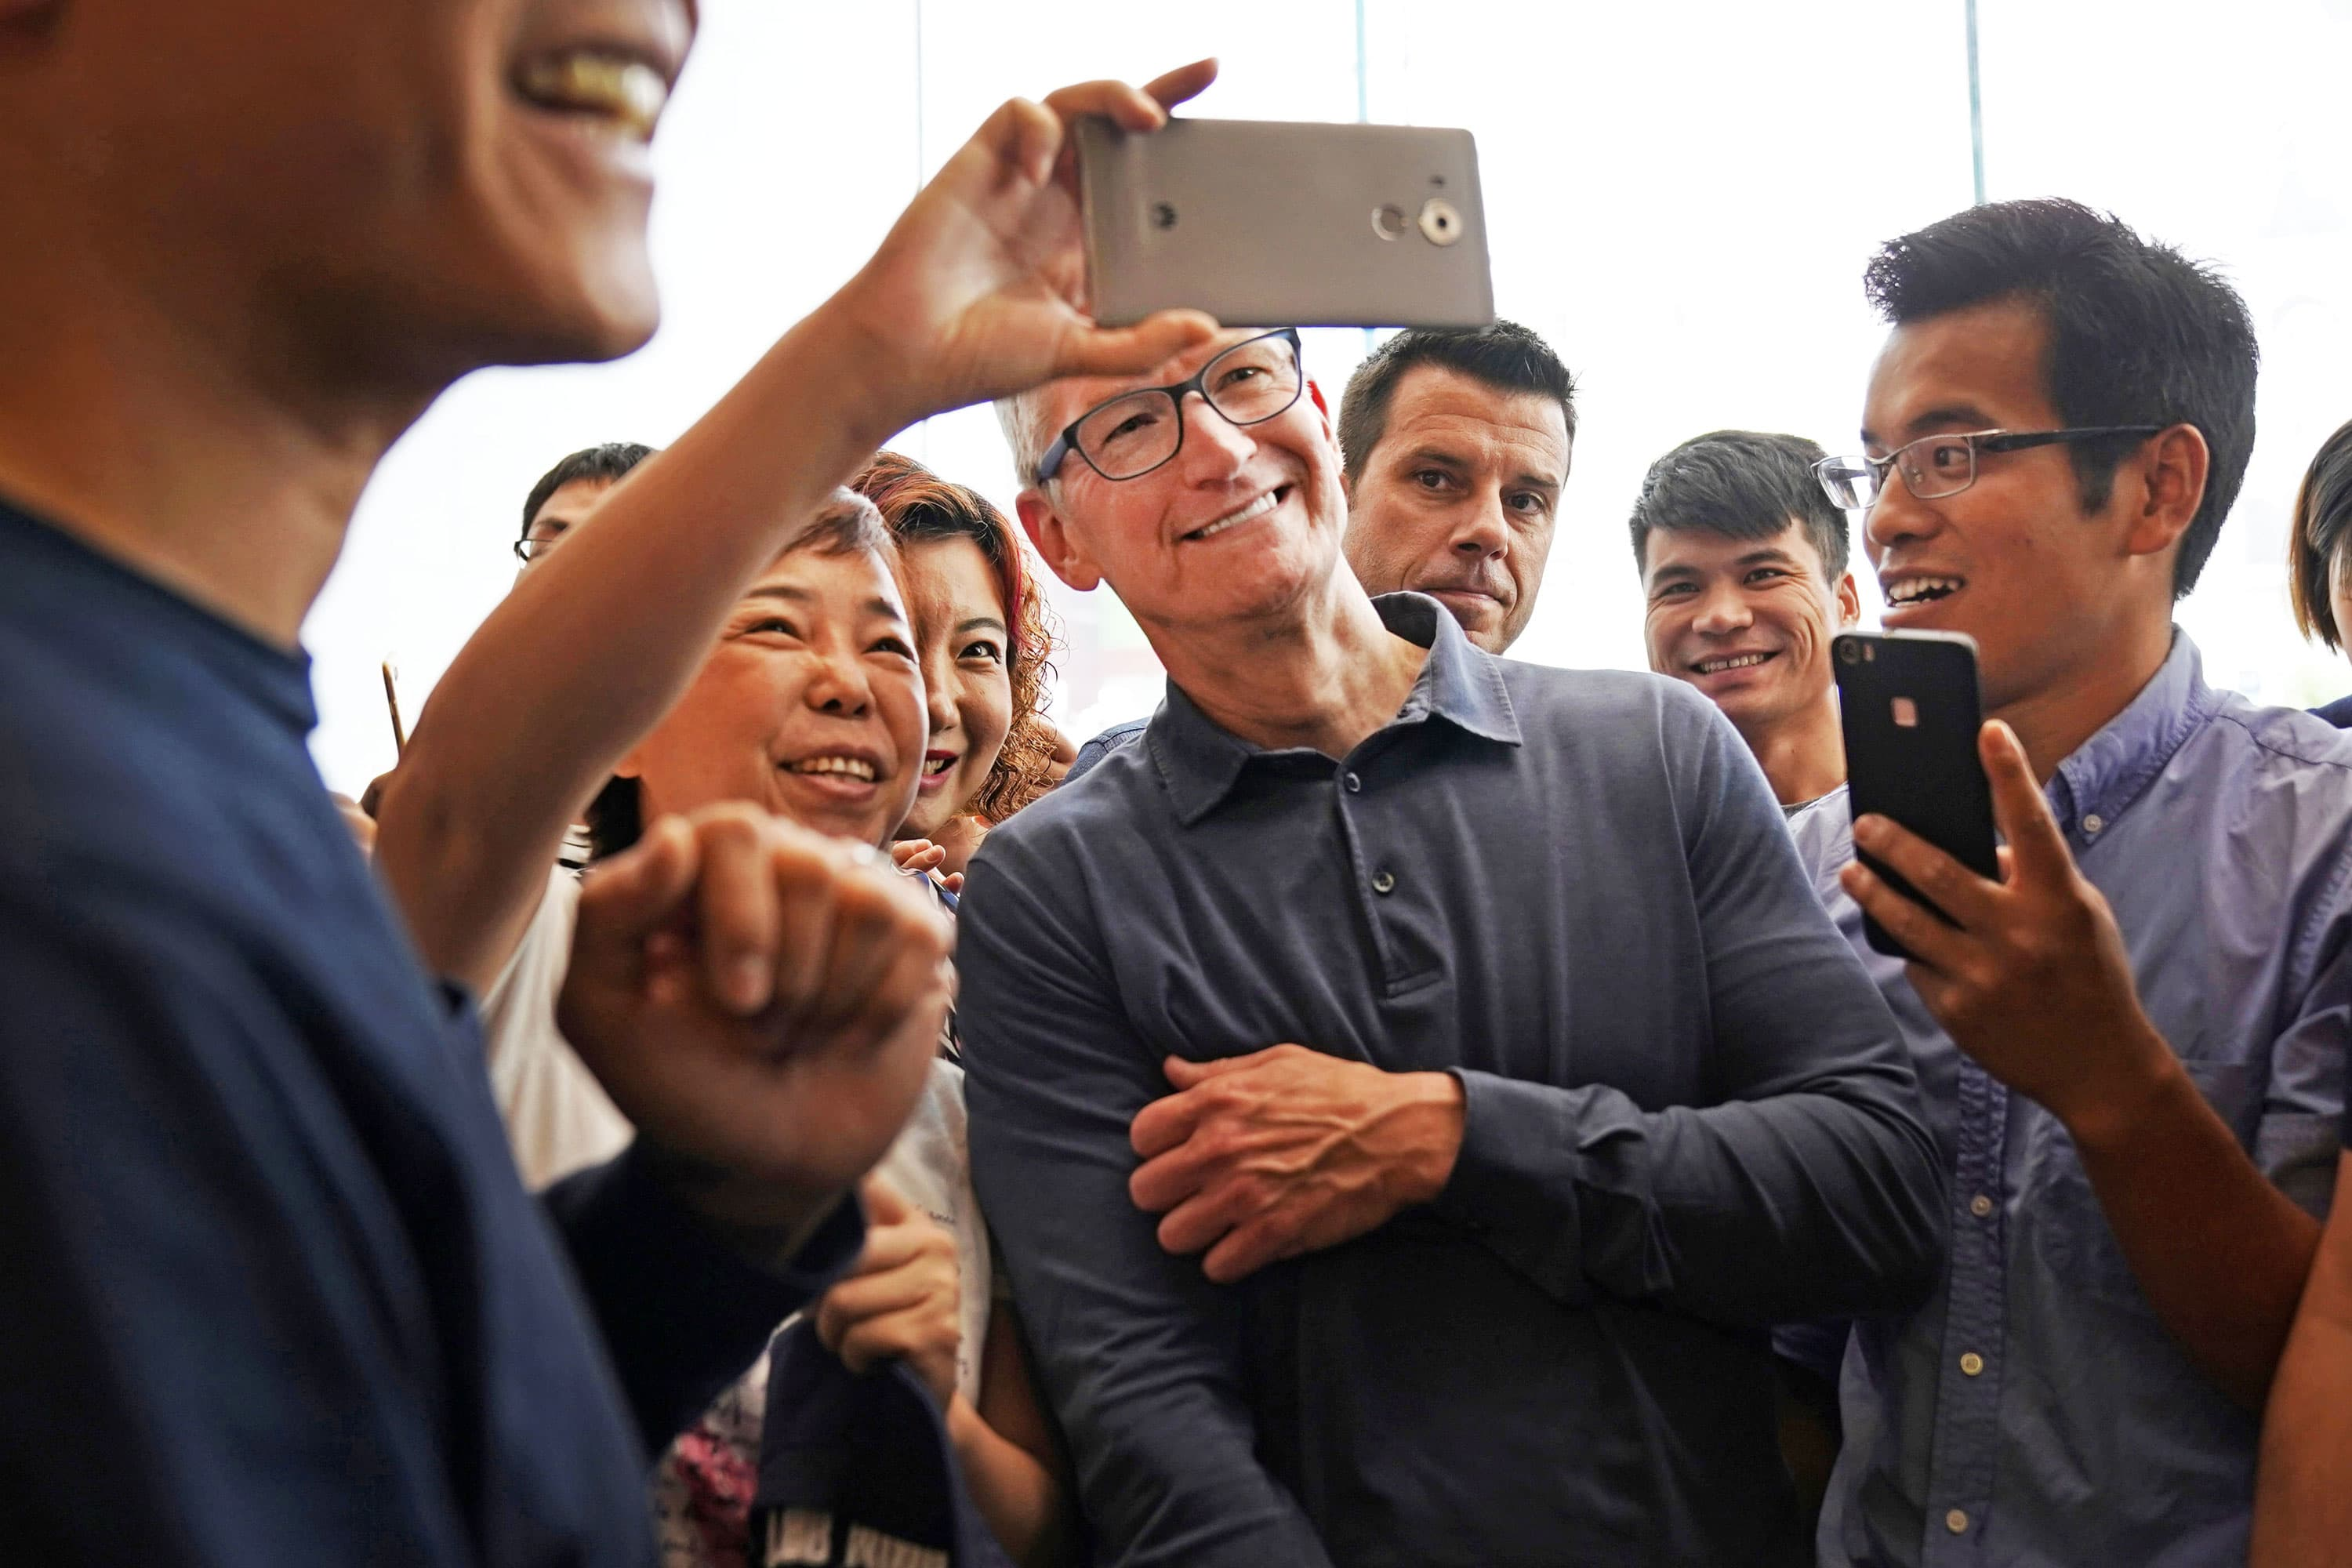 Apple is finally moving beyond the iPhone as the smartphone industry stalls out